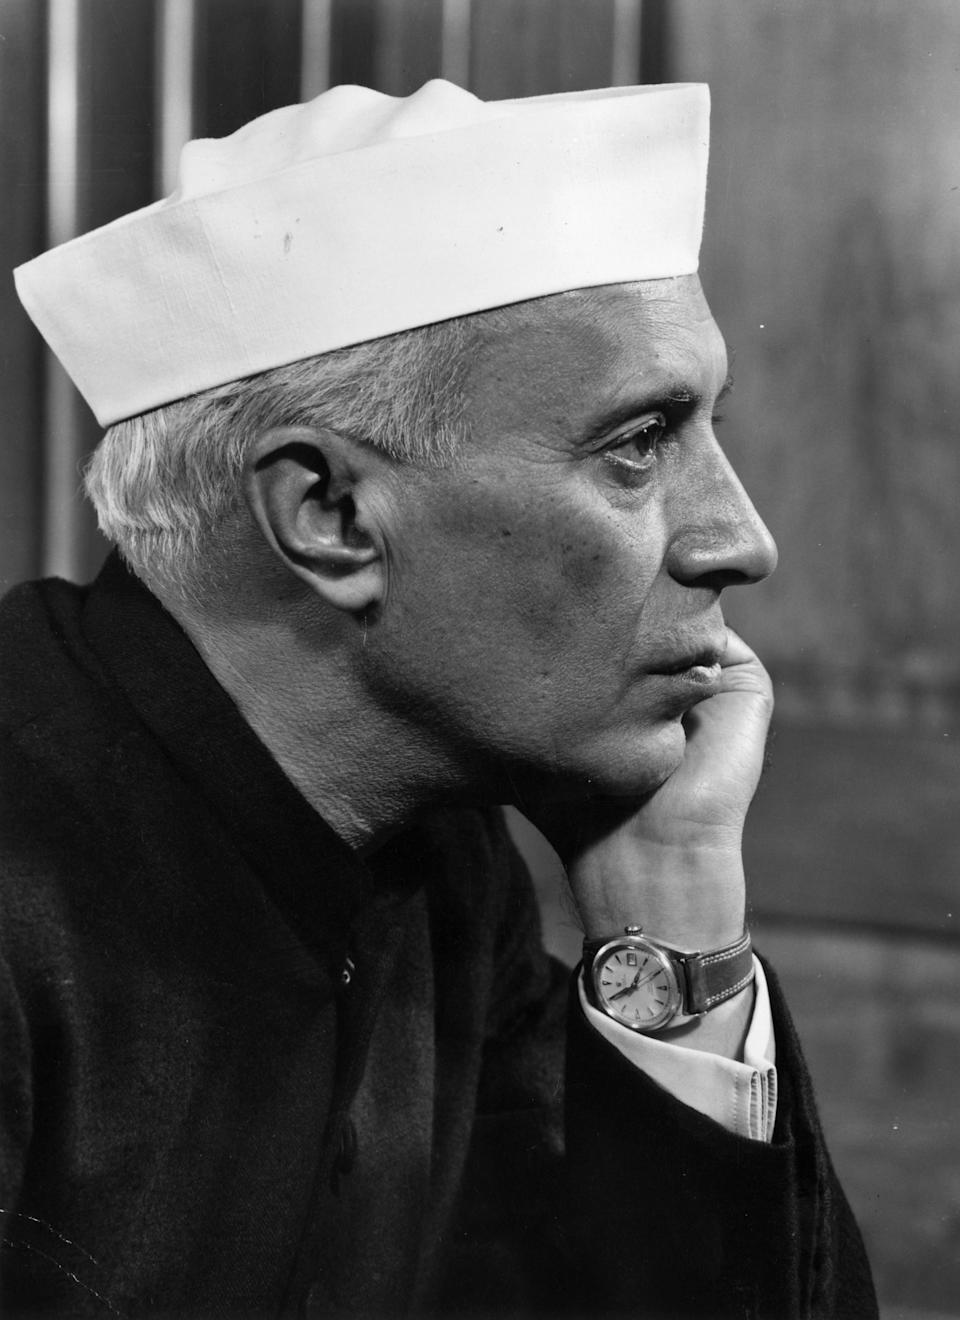 India's first prime minister, Jawaharlal Nehru, was one of the major forces that led India to independence. <em>Indian Prime Minister Jawaharlal Nehru (1889 - 1964). (Photo by Baron/Getty Images)</em>